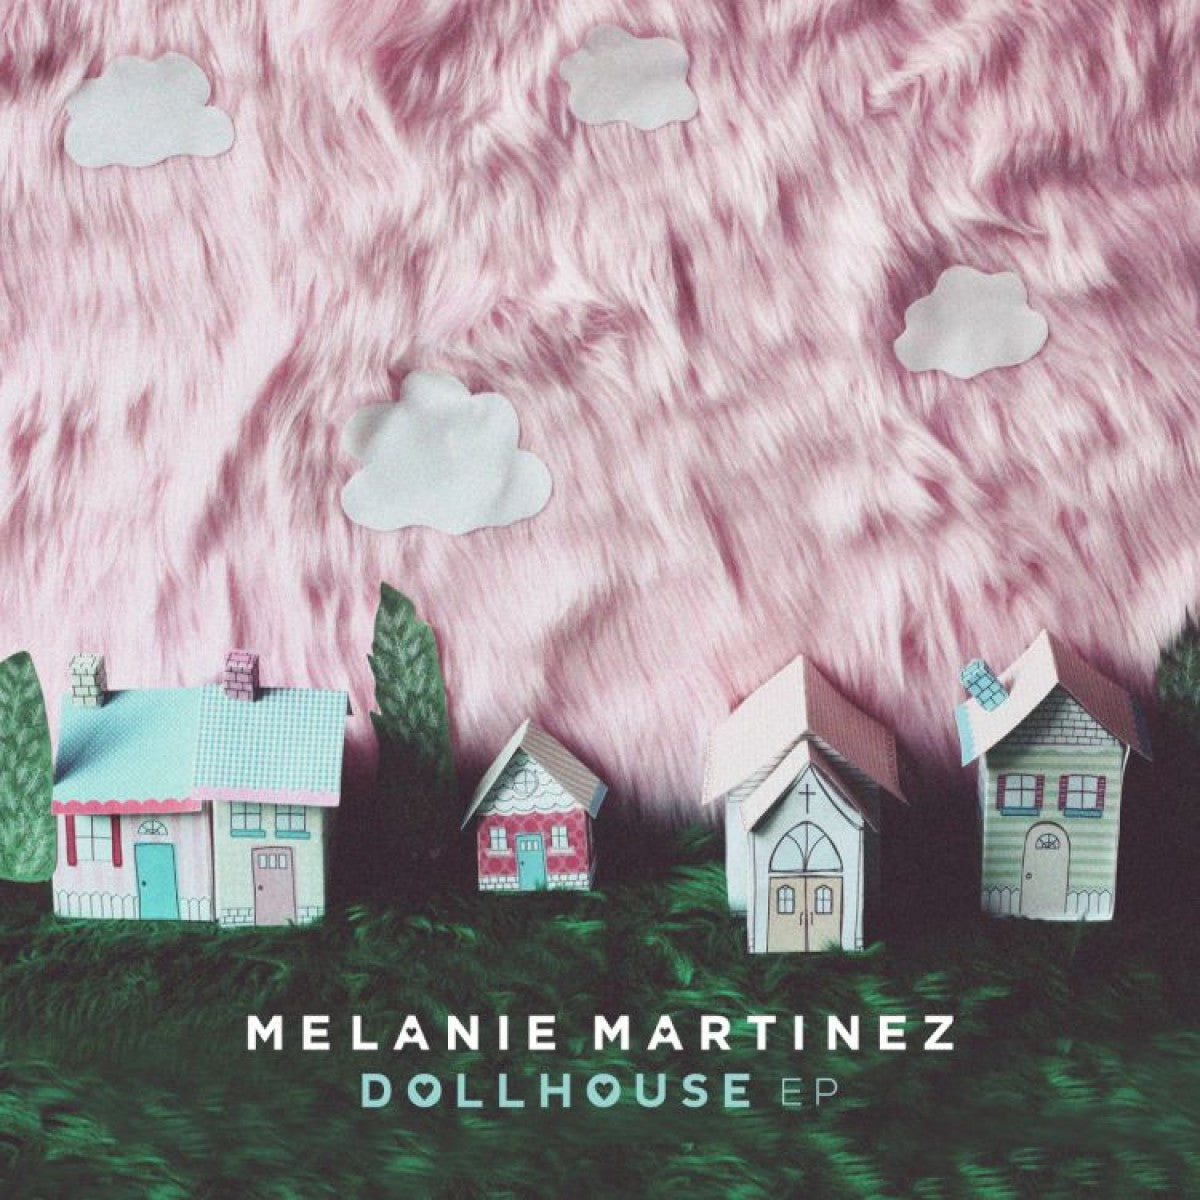 Melanie Martinez Dollhouse (CD EP)